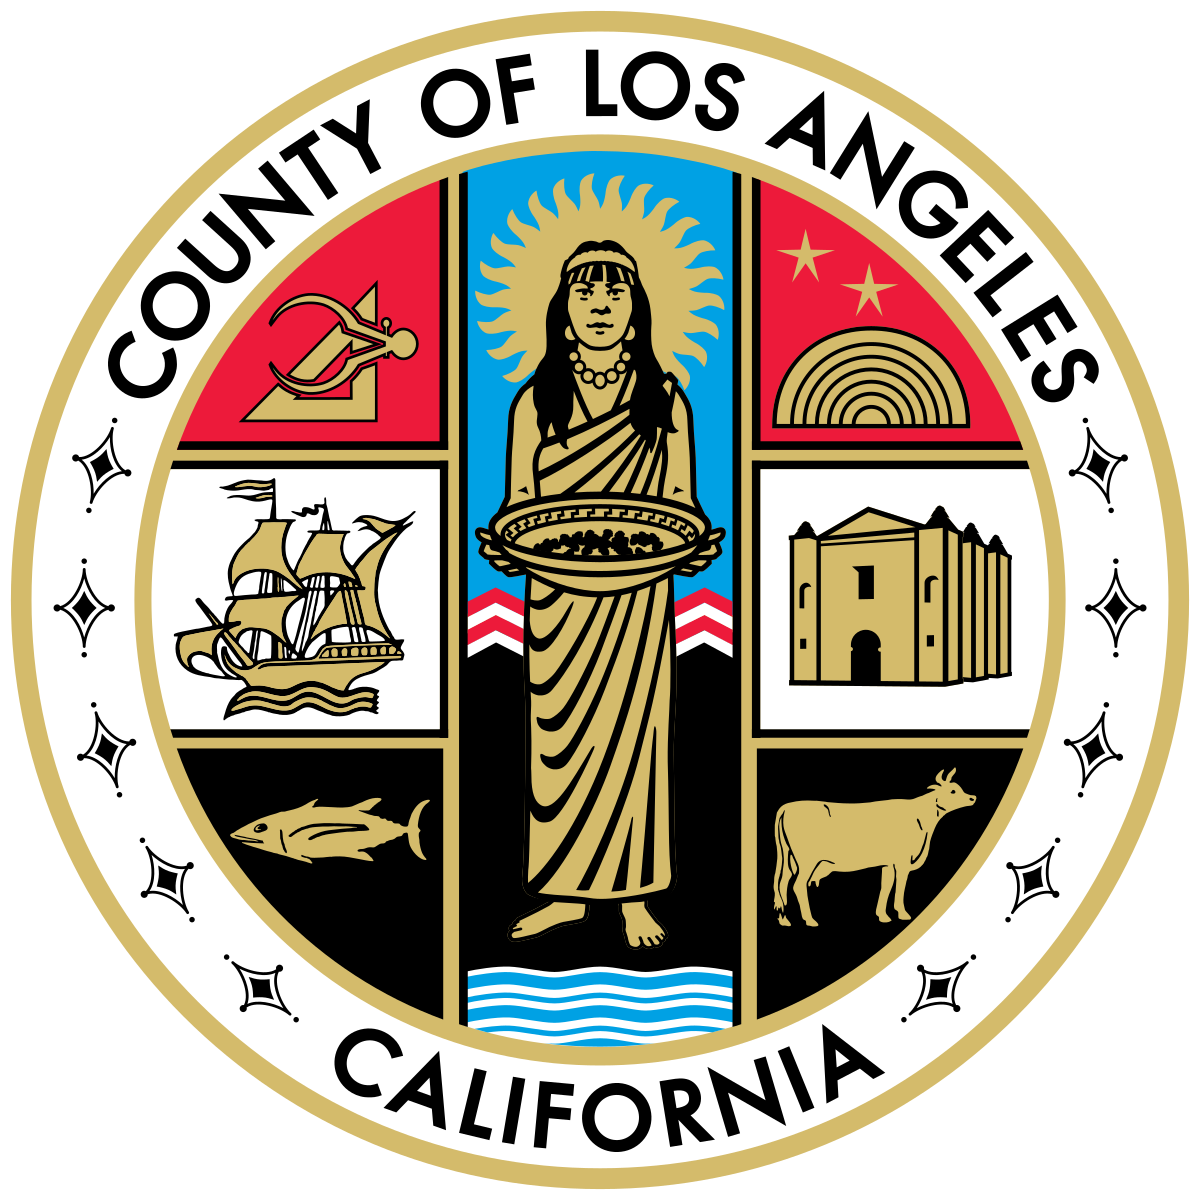 County of Los Angeles California